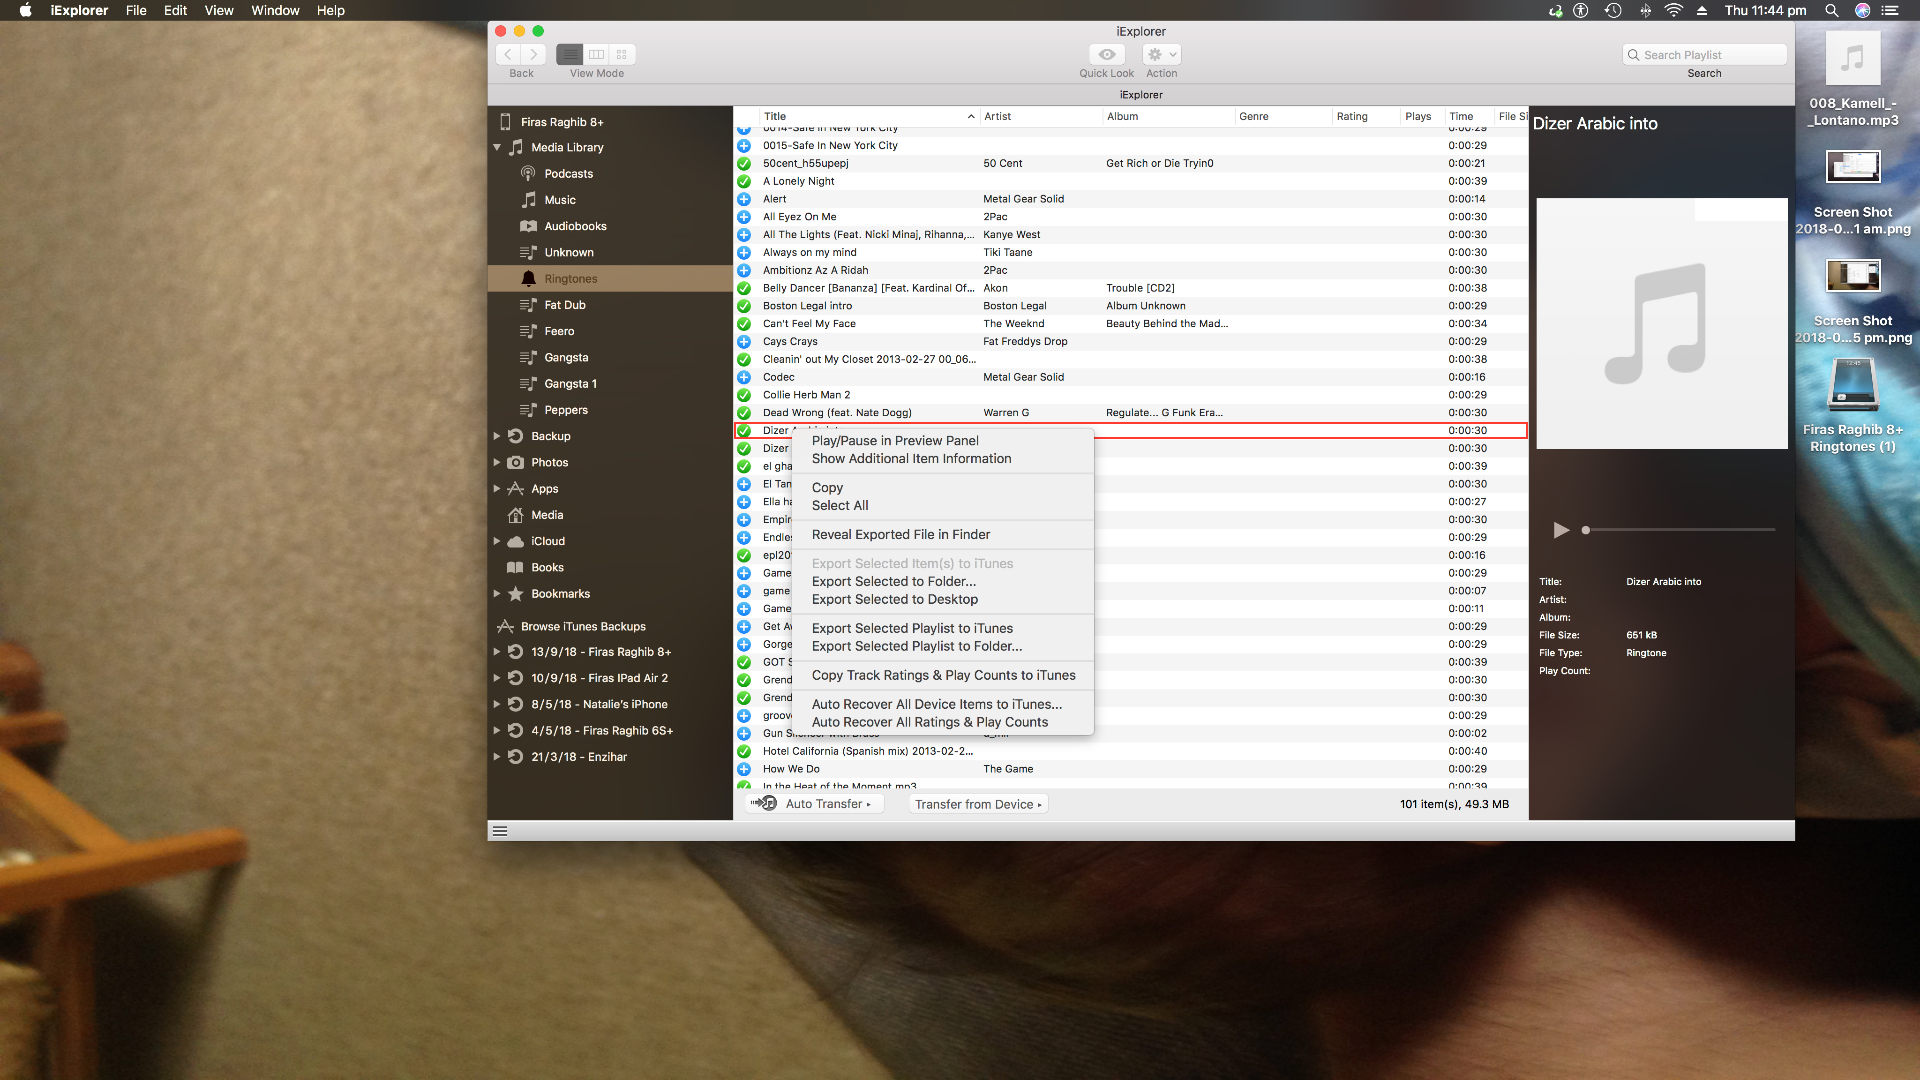 tones not syncing - Apple Community